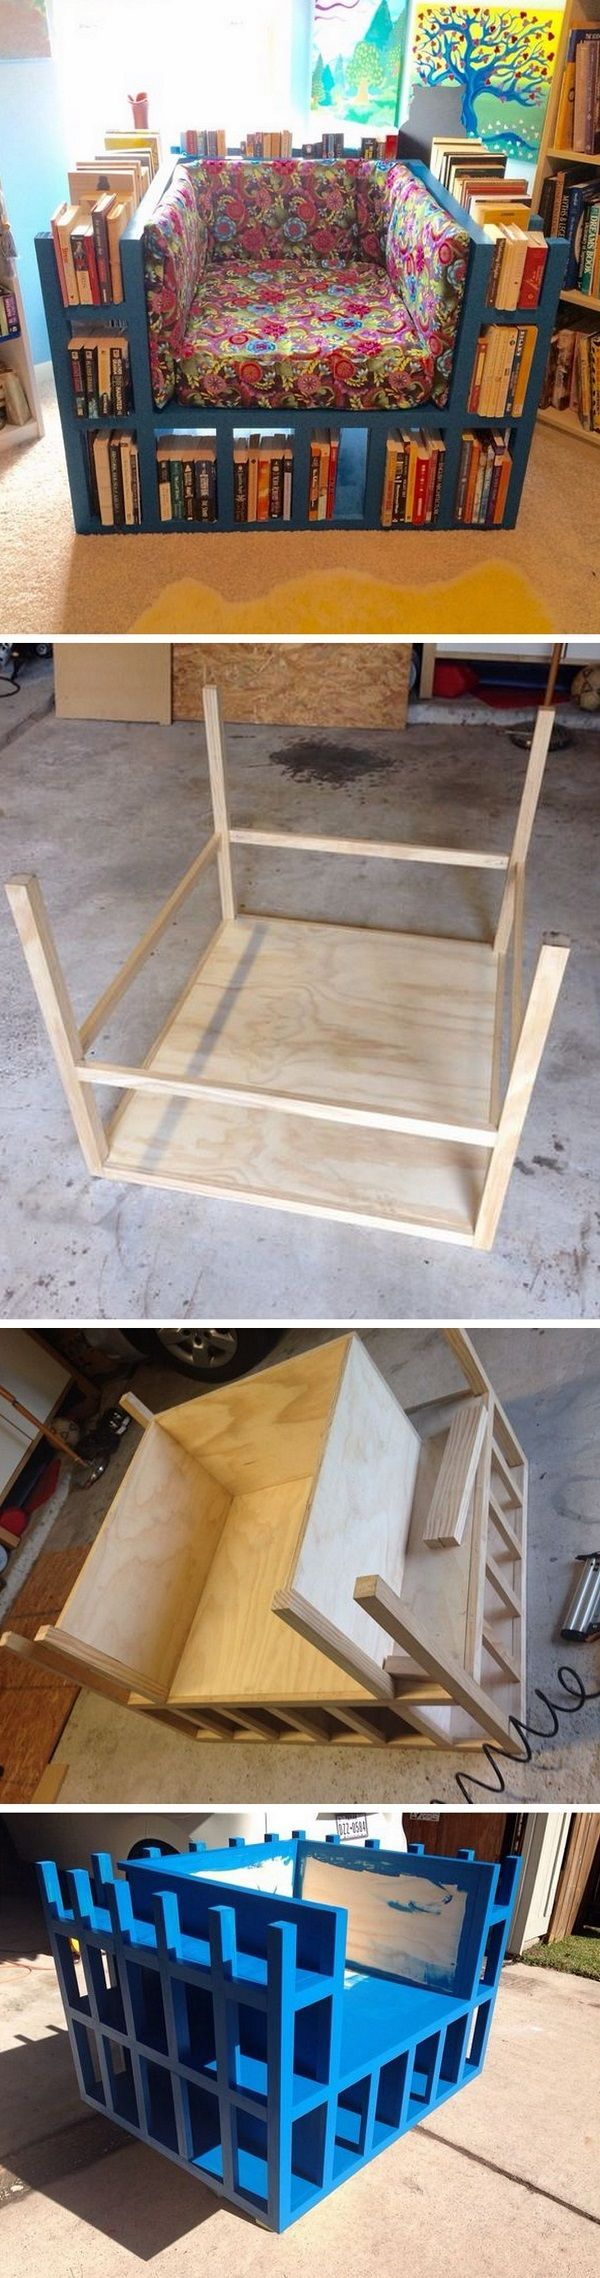 Check out the tutorial how to make a DIY bookshelf chair for home decor @istandarddesign